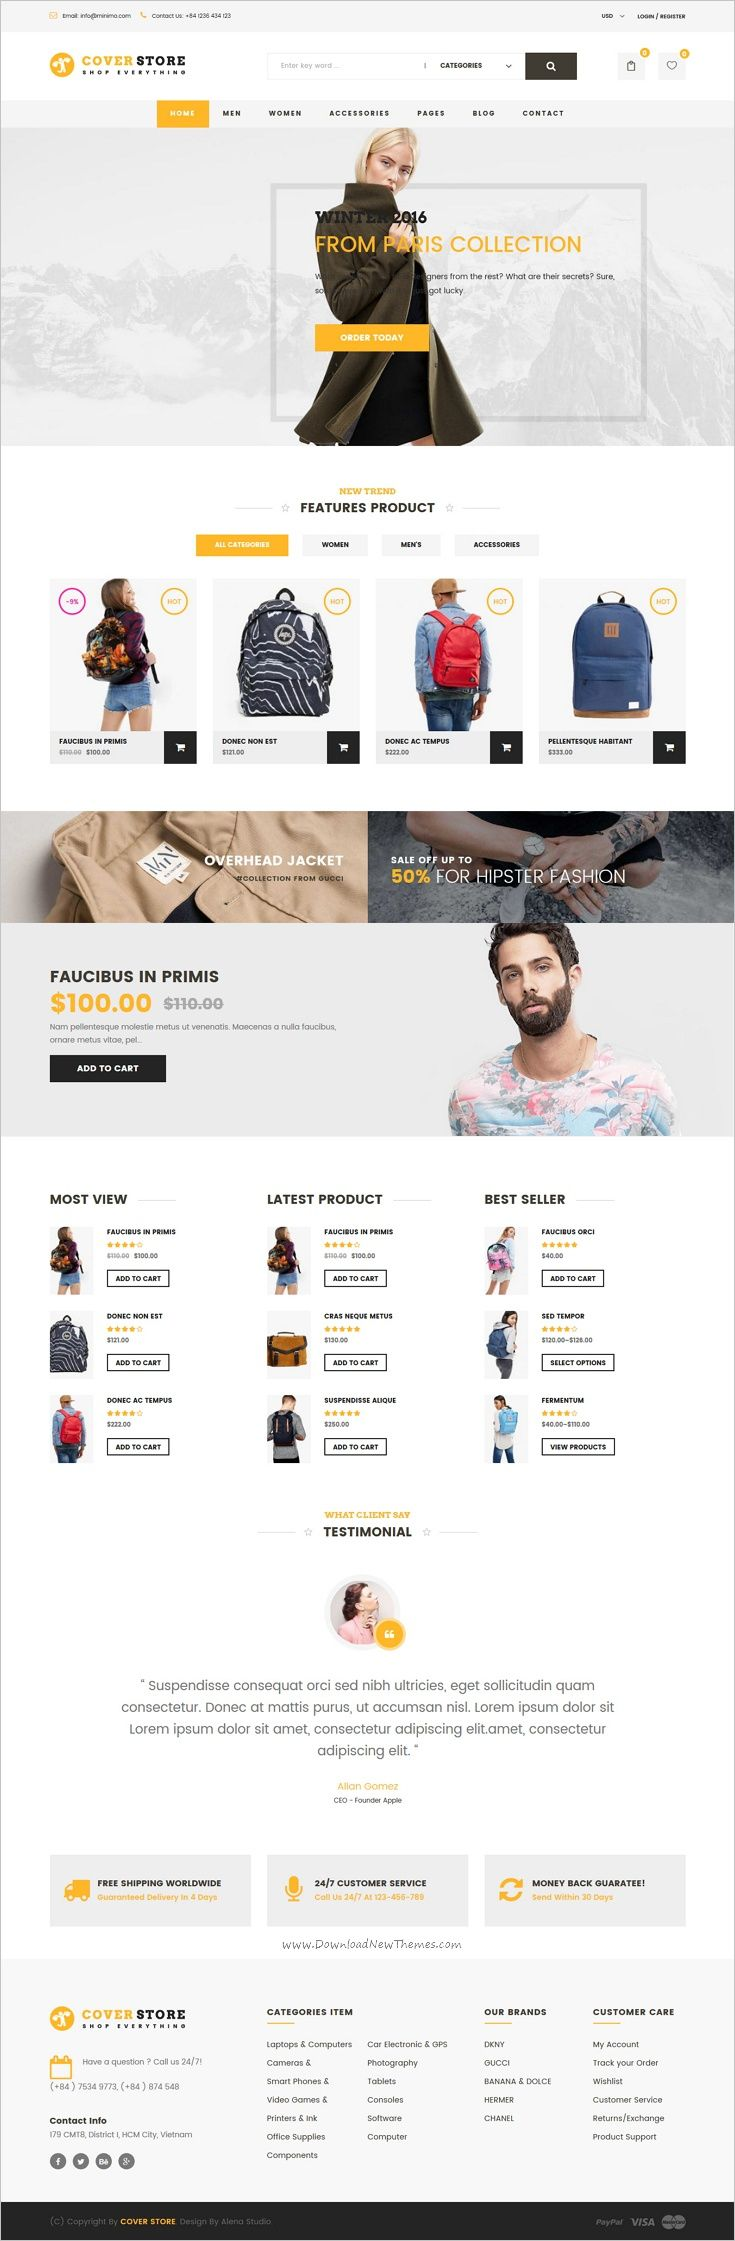 Cover shop is a wonderful responsive #WooCommerce #WordPress theme for awesome #eCommerce websites with 5+ unique homepage layouts download now➩ https://themeforest.net/item/cover-shop-woocommerce-wordpress-theme/18379911?ref=Datasata